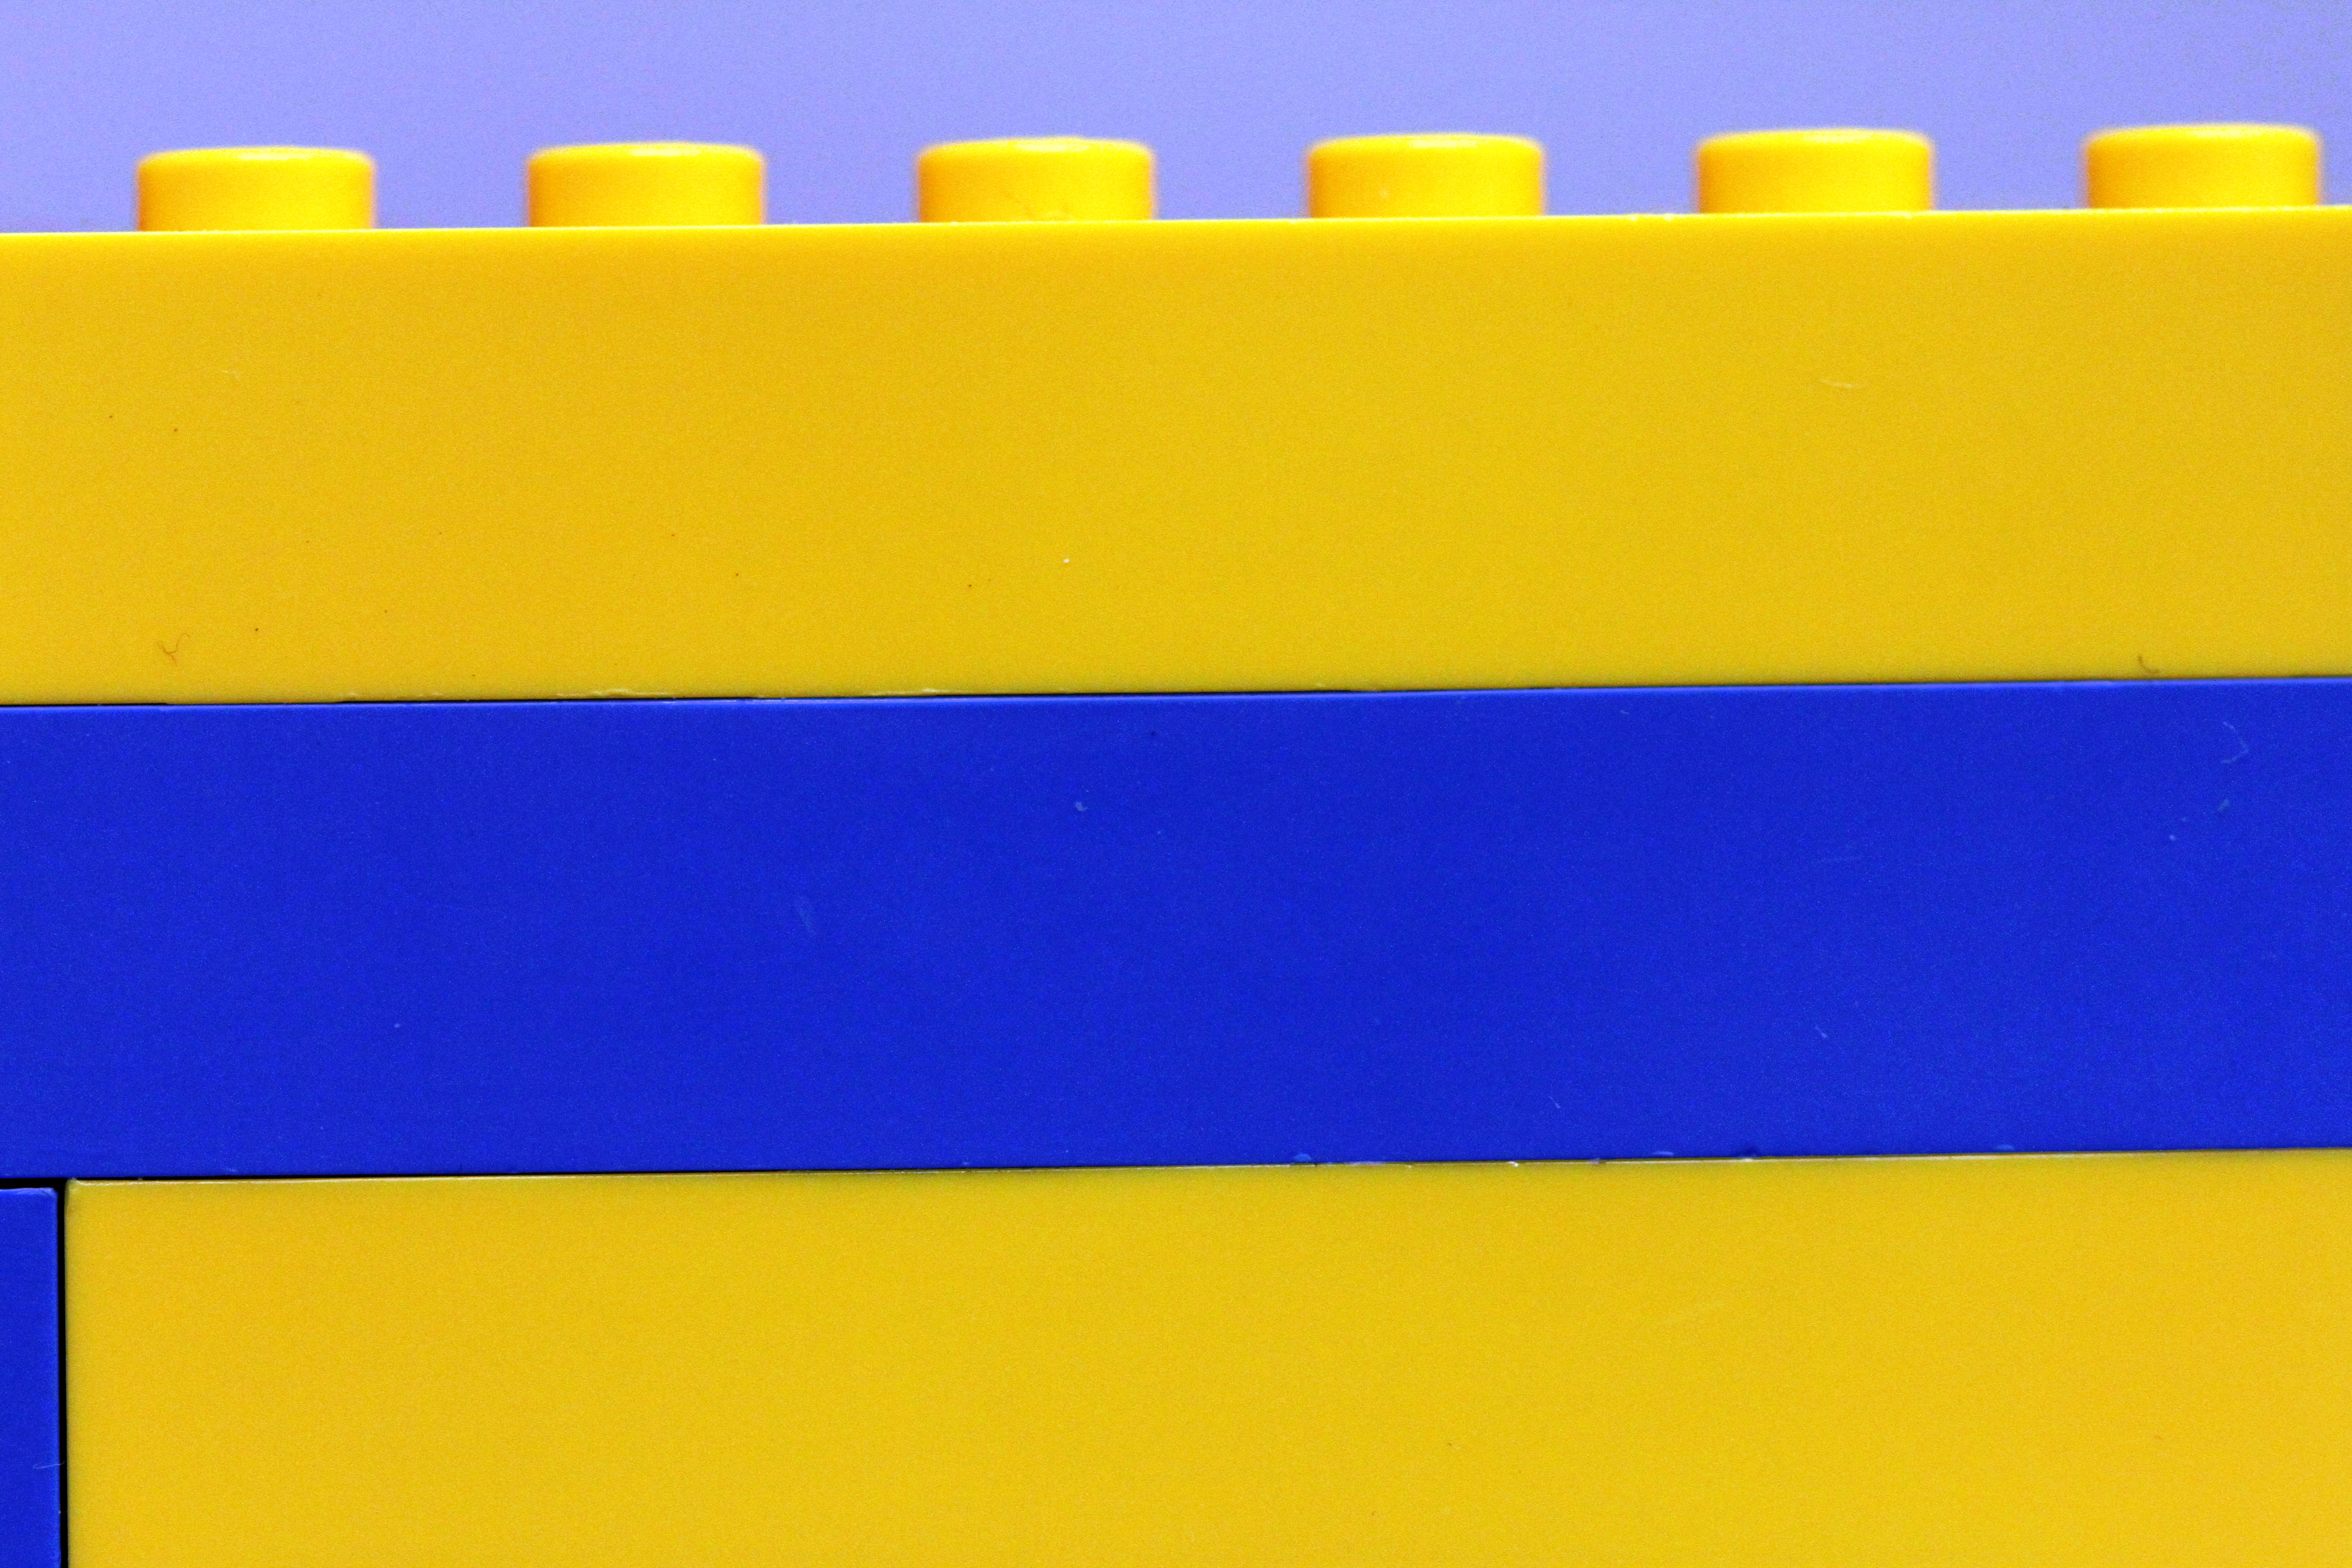 lego brick side view clipart - photo #17